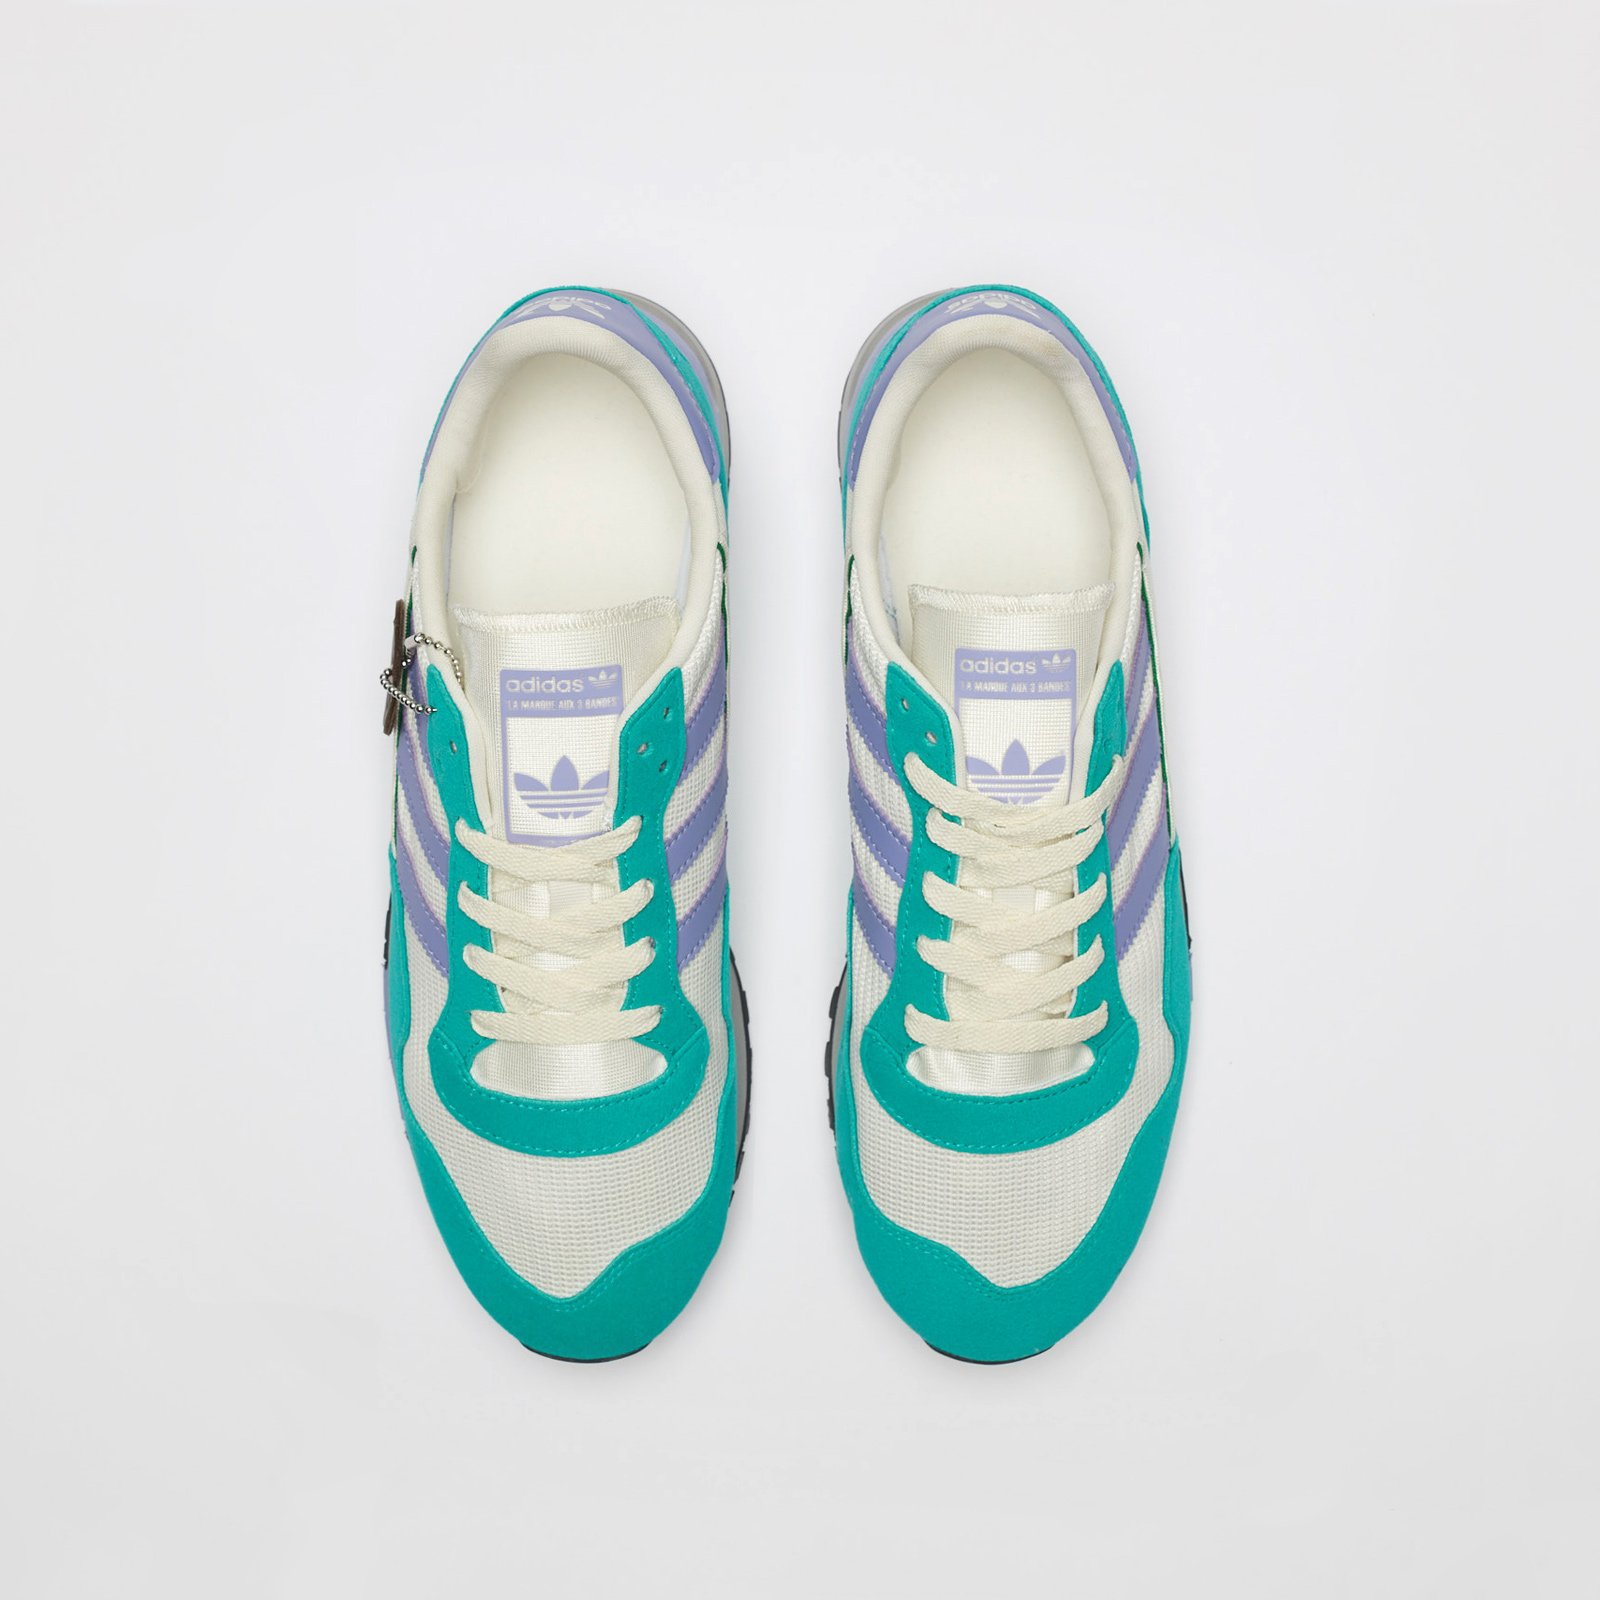 new concept e488f 42779 adidas Originals Spezial Lowertree - 7. Close